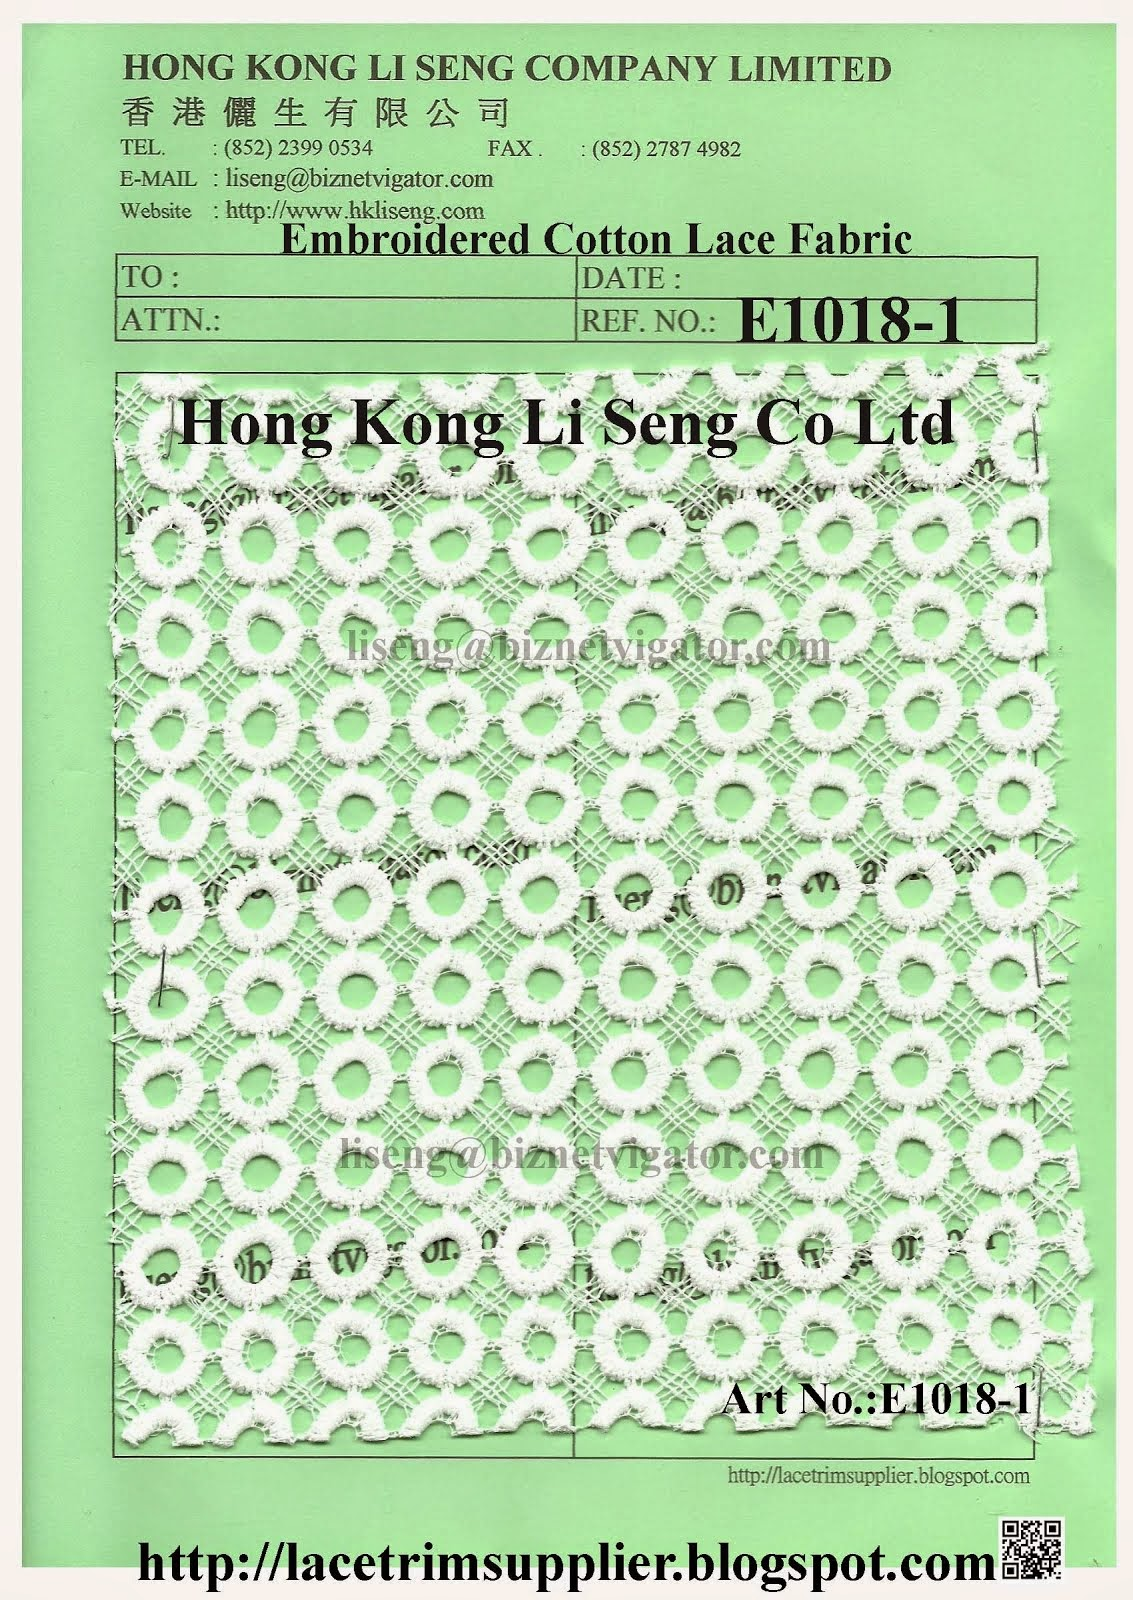 New Embroidered Cotton Lace FabricPattern Manufacturer Wholesale Supplier-Hong Kong Li Seng Co Ltd